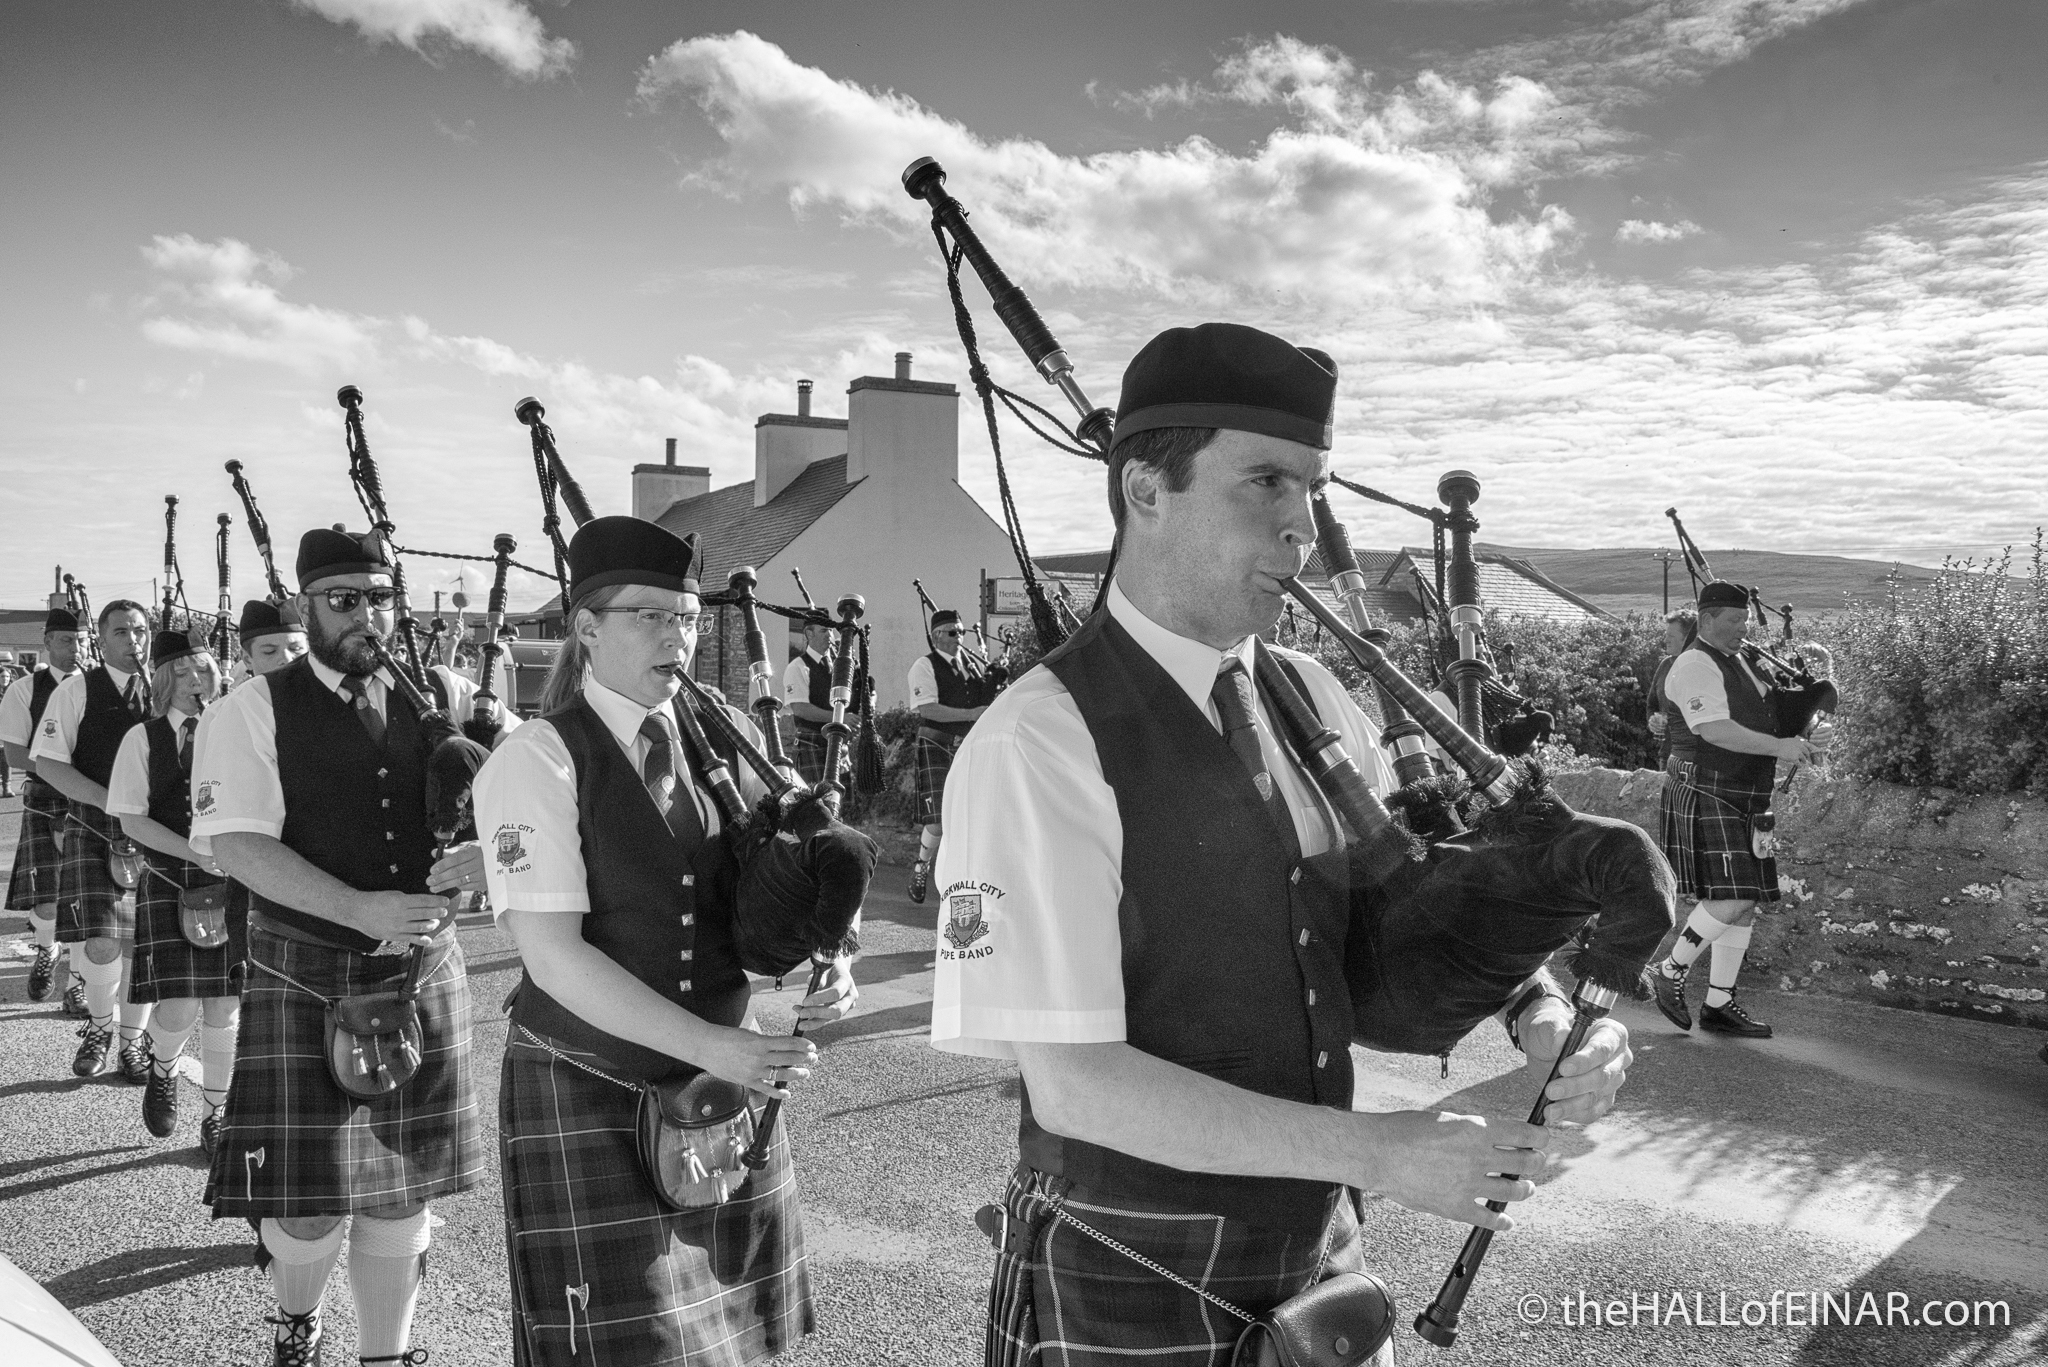 Westray Connections Parade - photograph (c) David Bailey (not the)